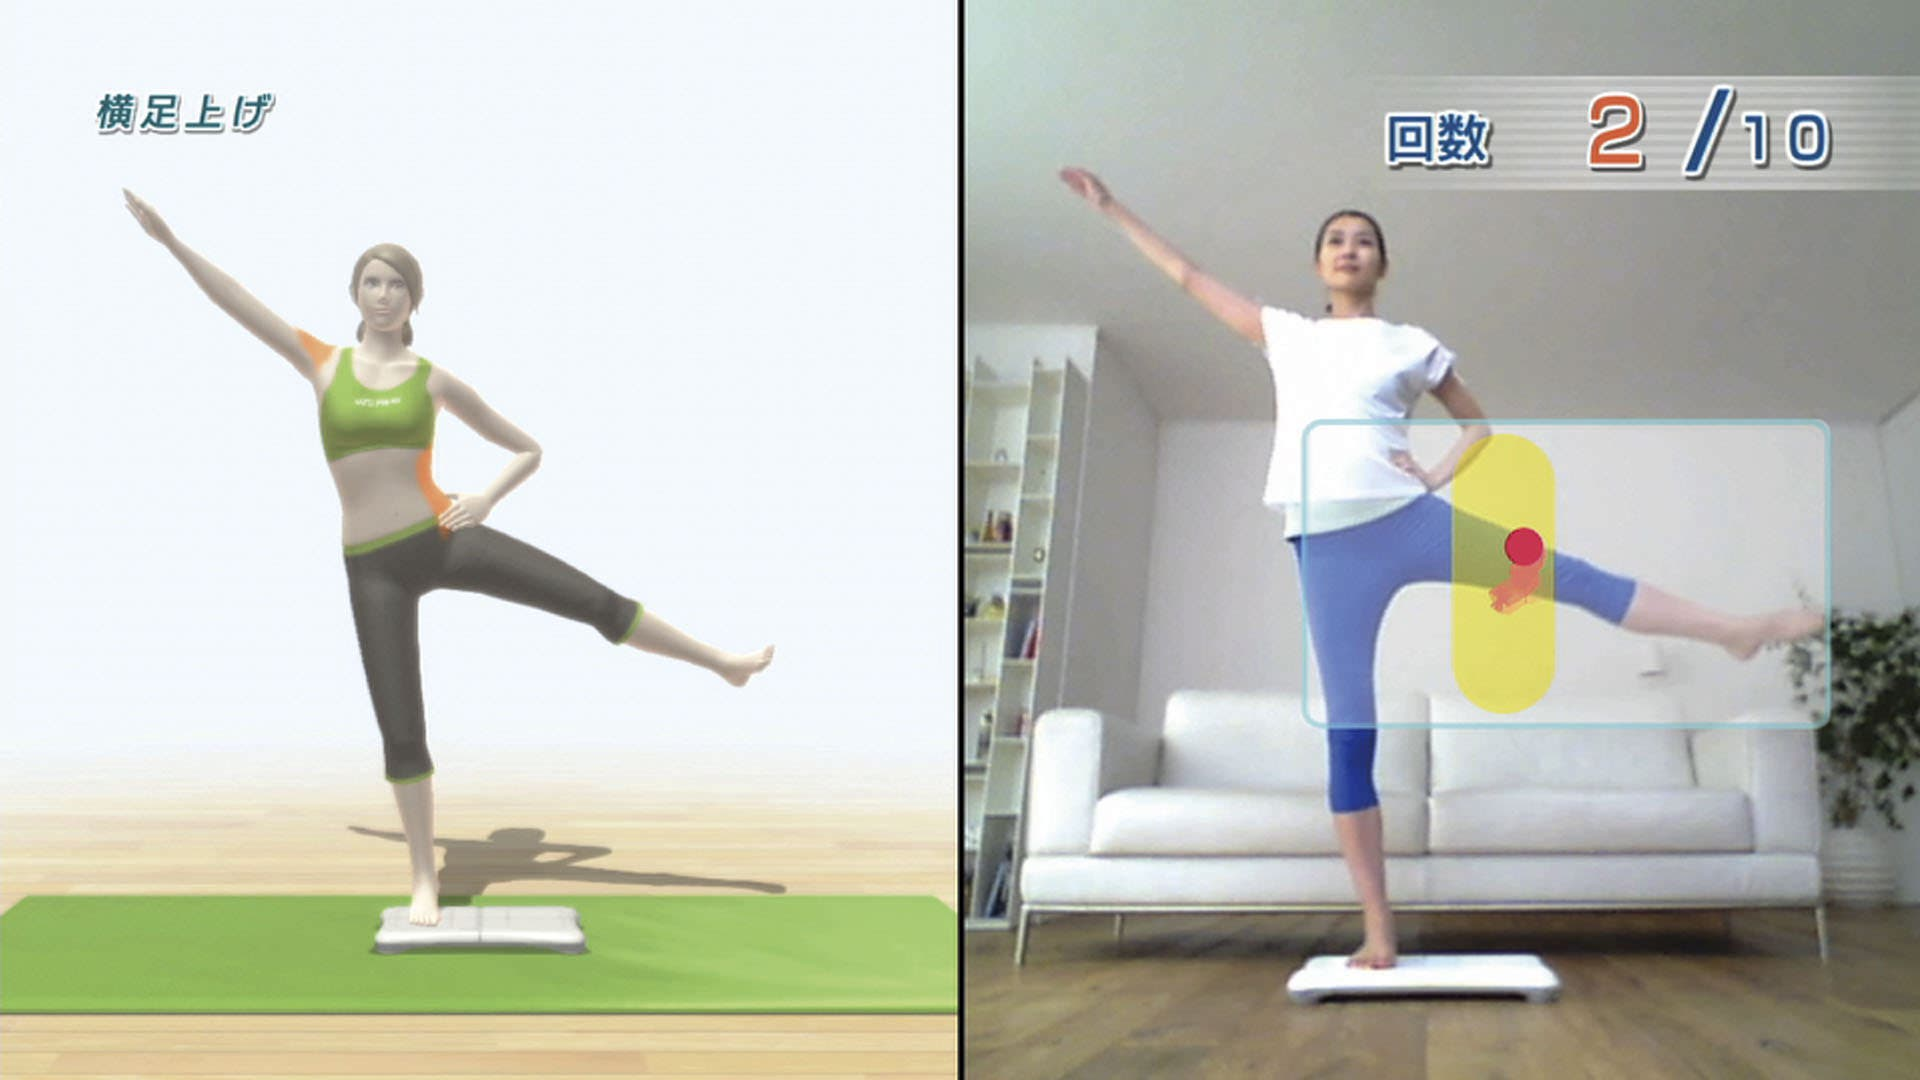 Actualización 1.2.0 para 'Wii Fit U' ya disponible